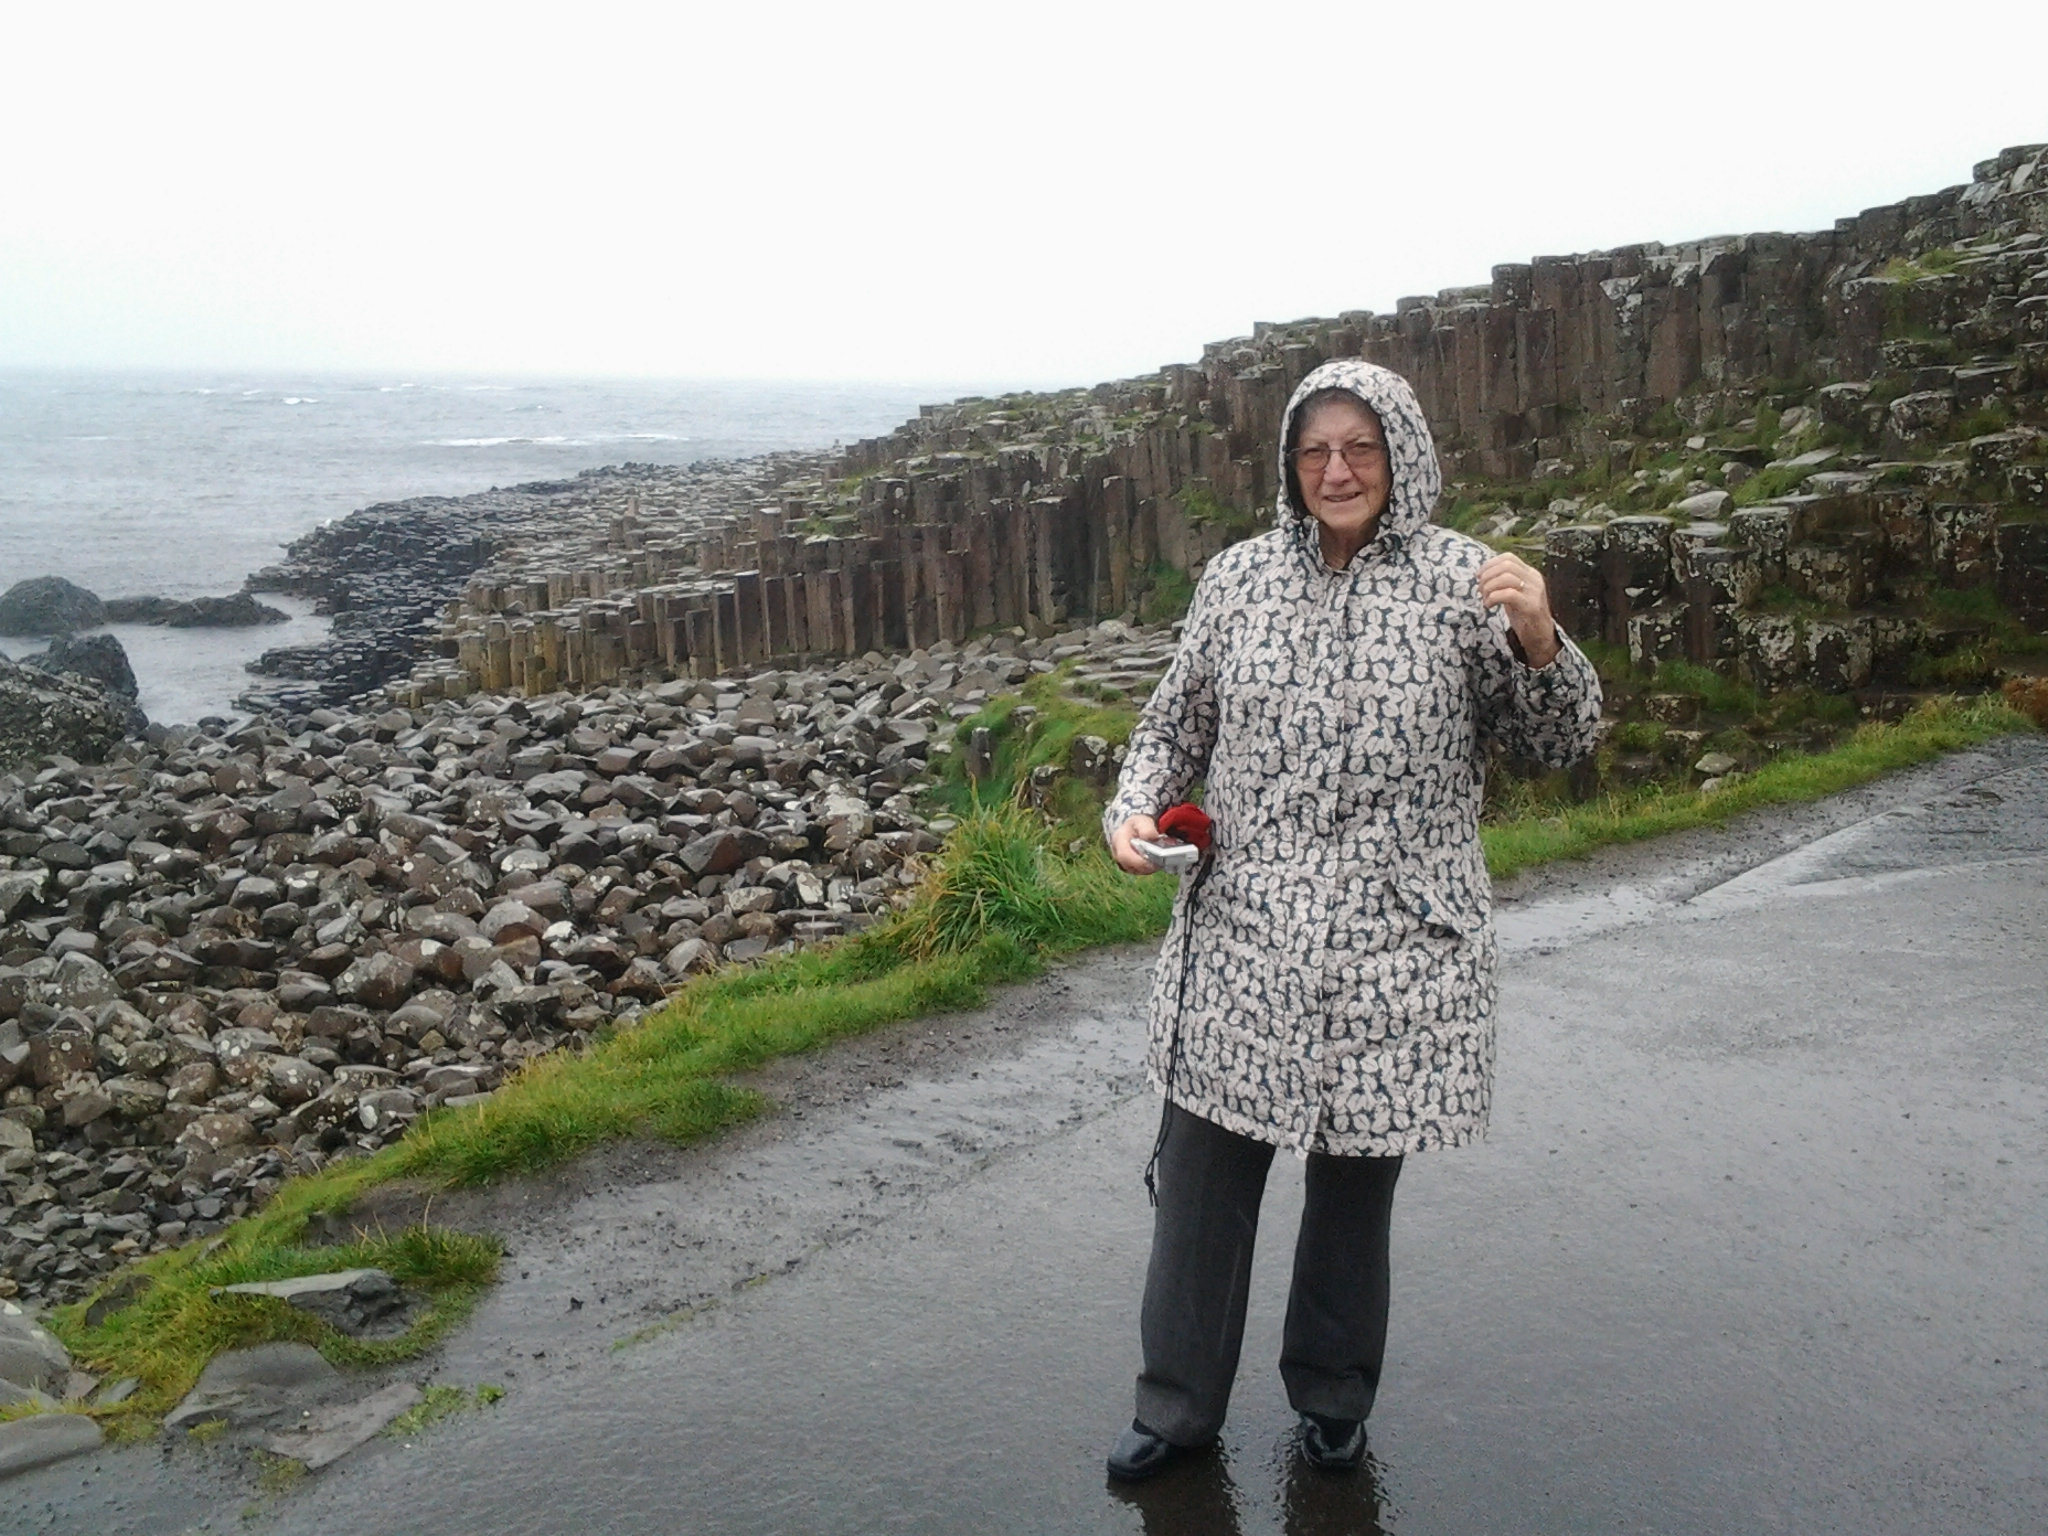 Peggy Carter braves the elements at the Giant's Causeway